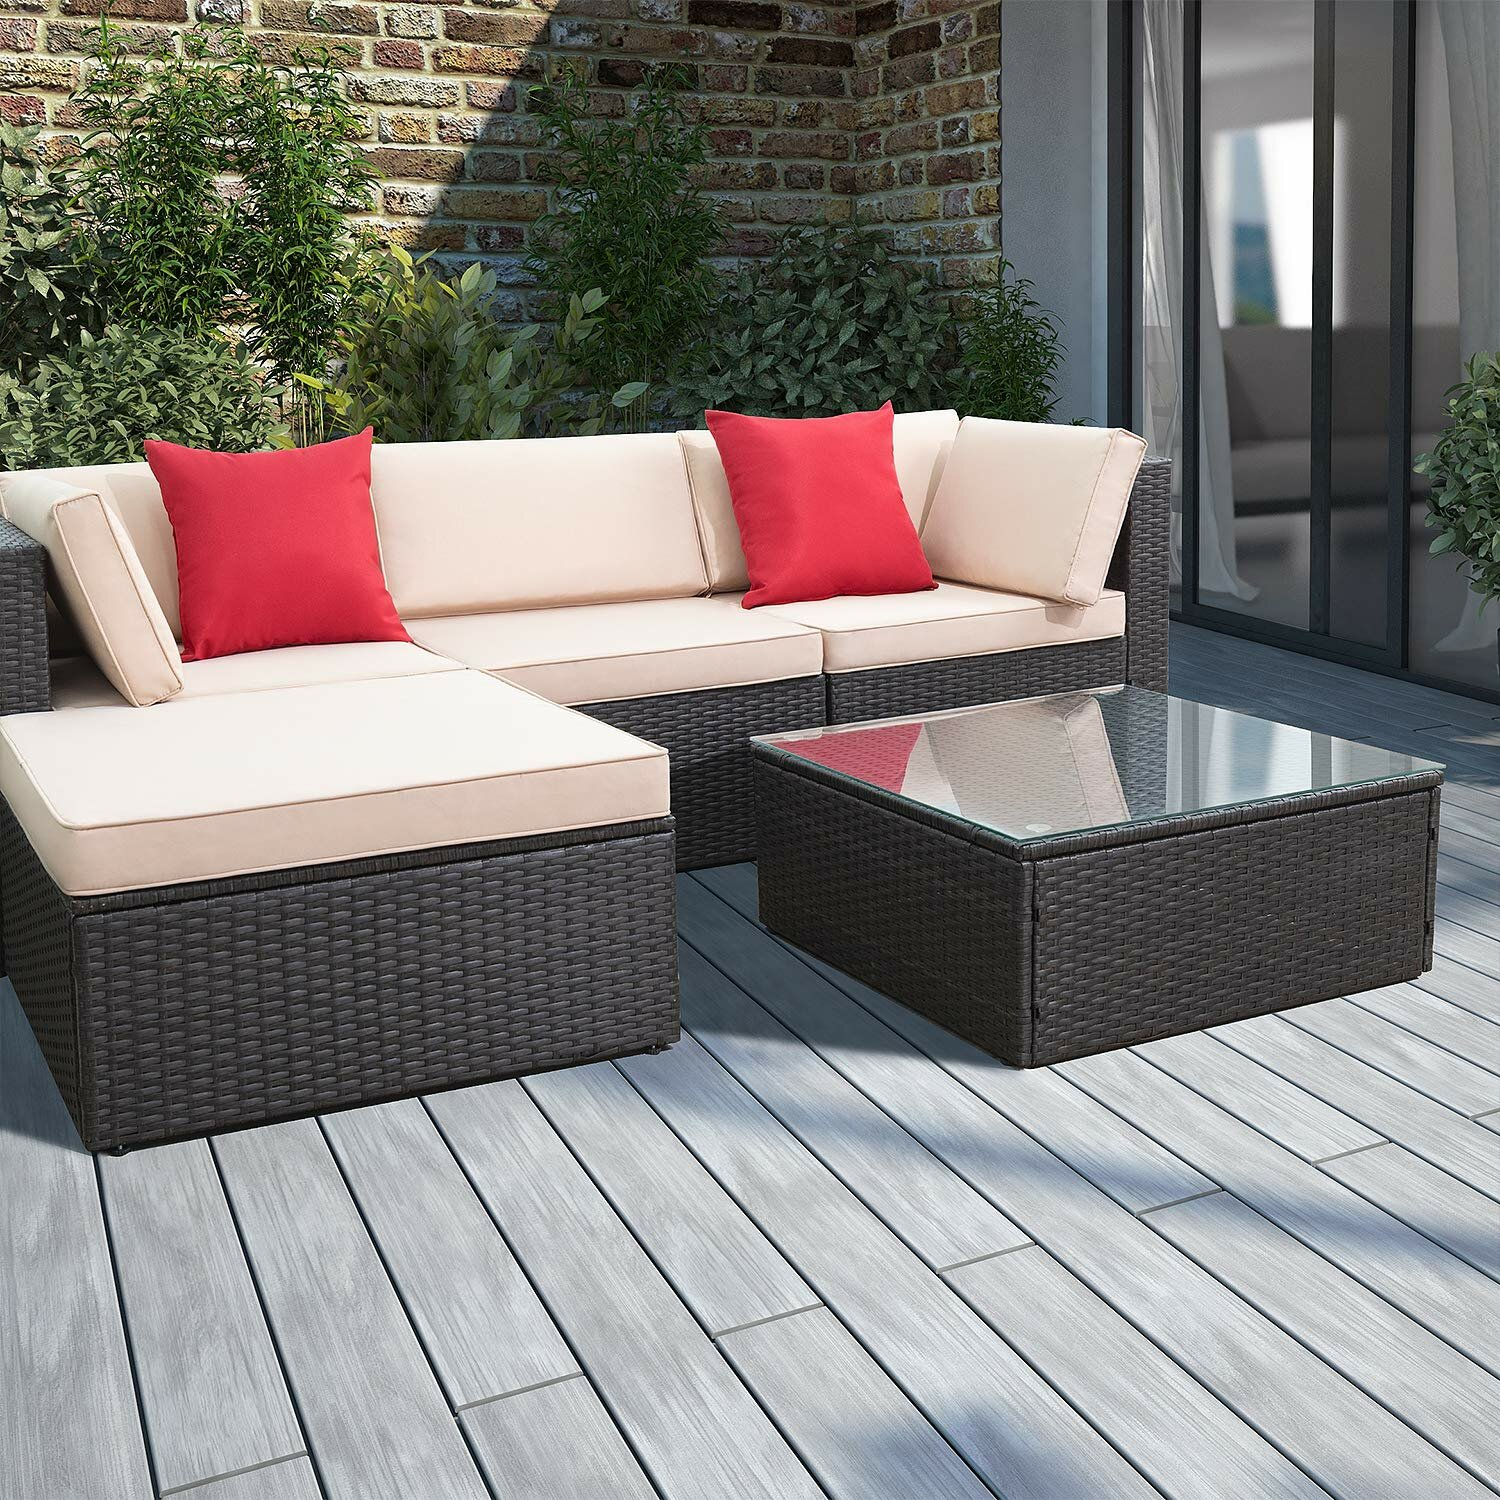 5 Piece Rattan Sectional Seating Group